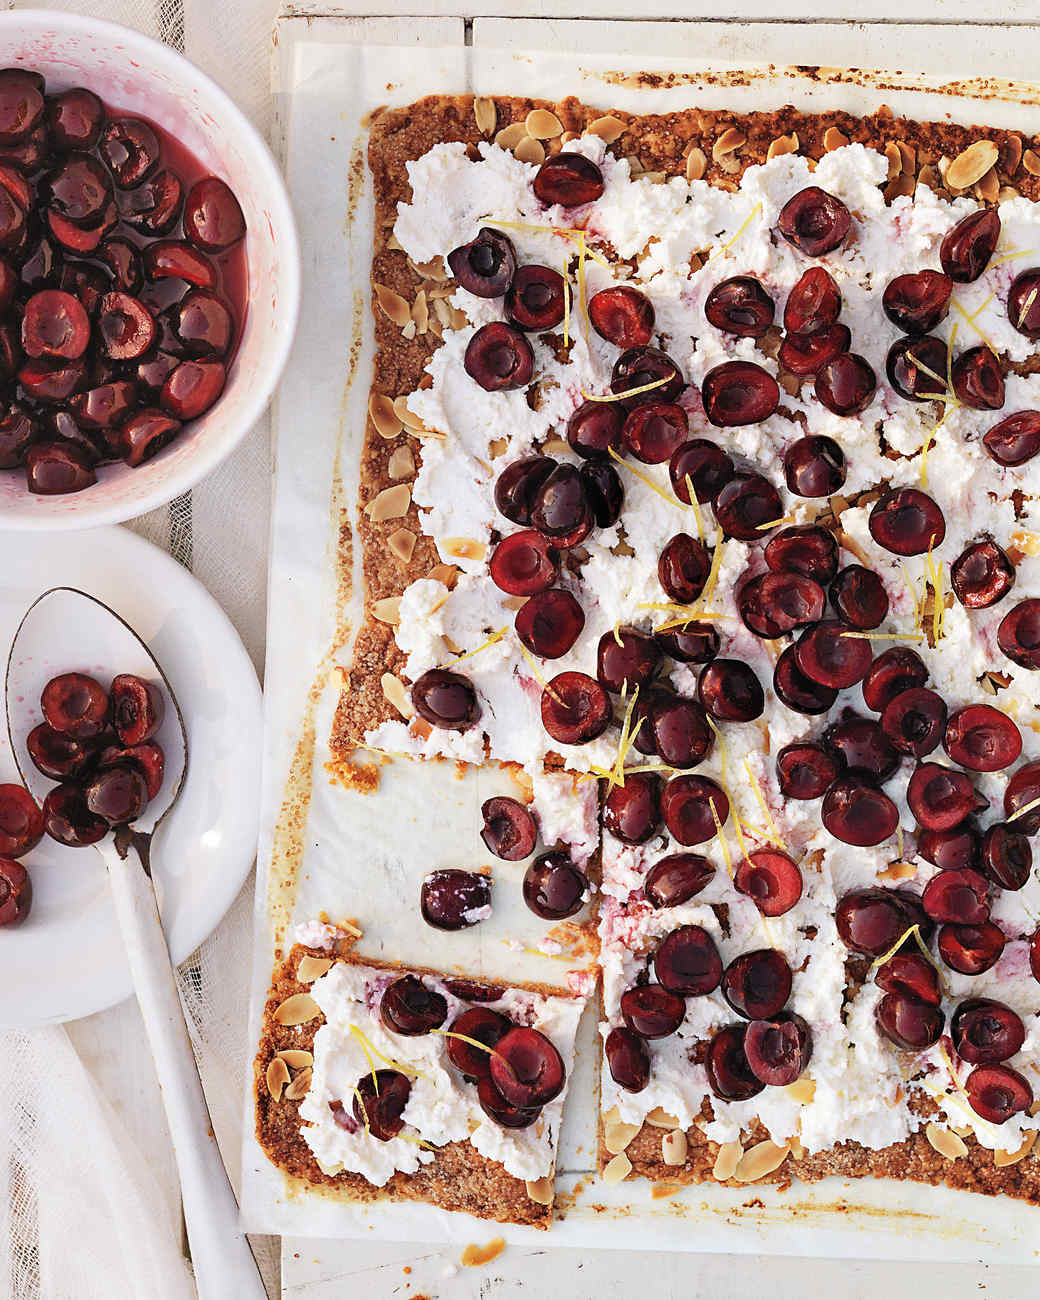 Rustic Cherry Tart with Ricotta and Almonds